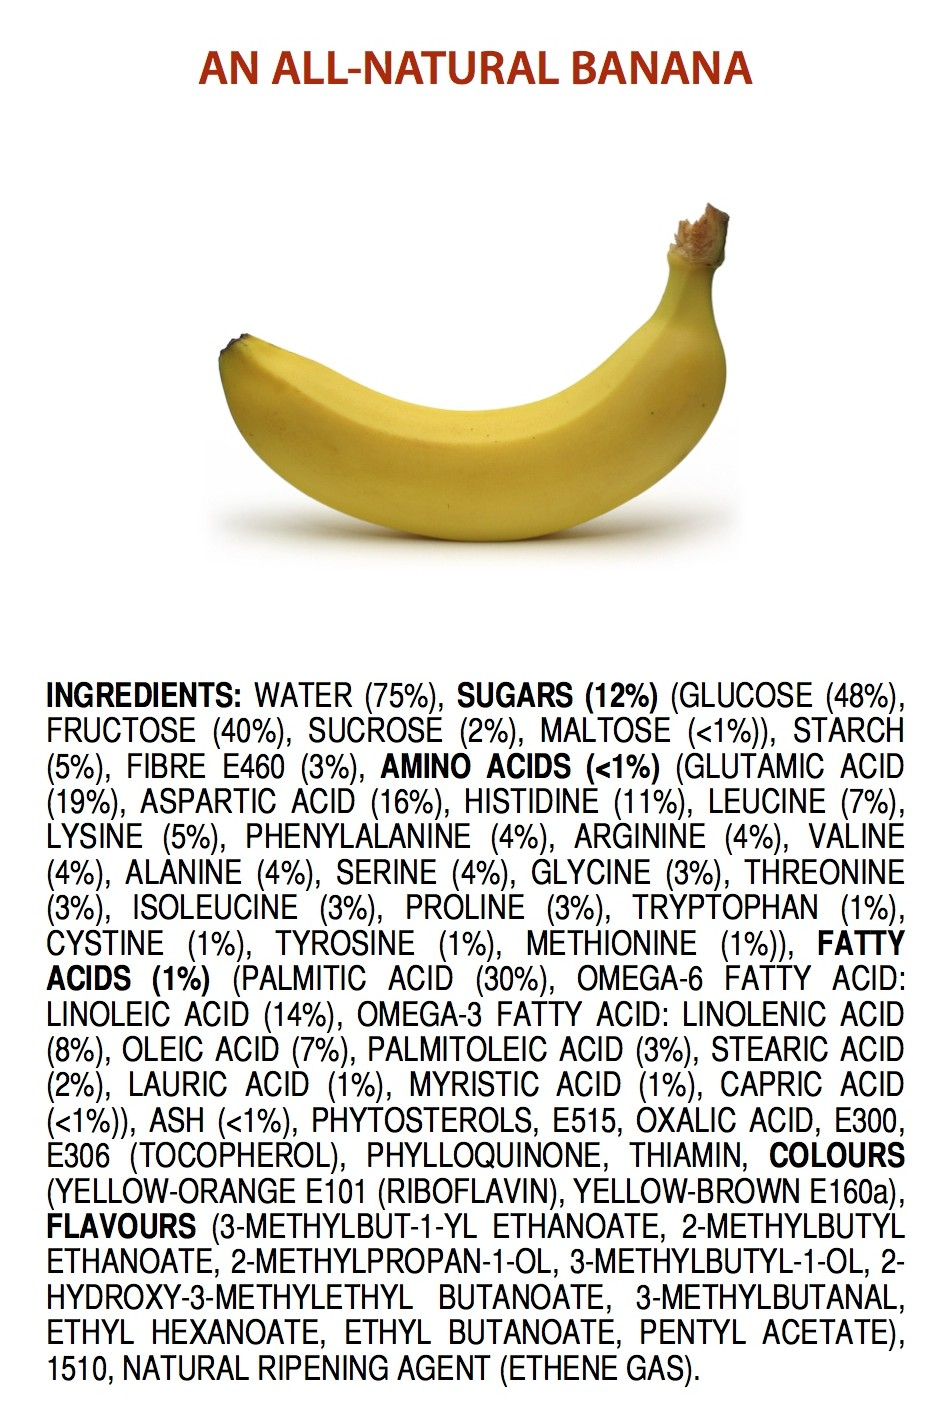 The ingredients of an all natural banana by James Kennedy